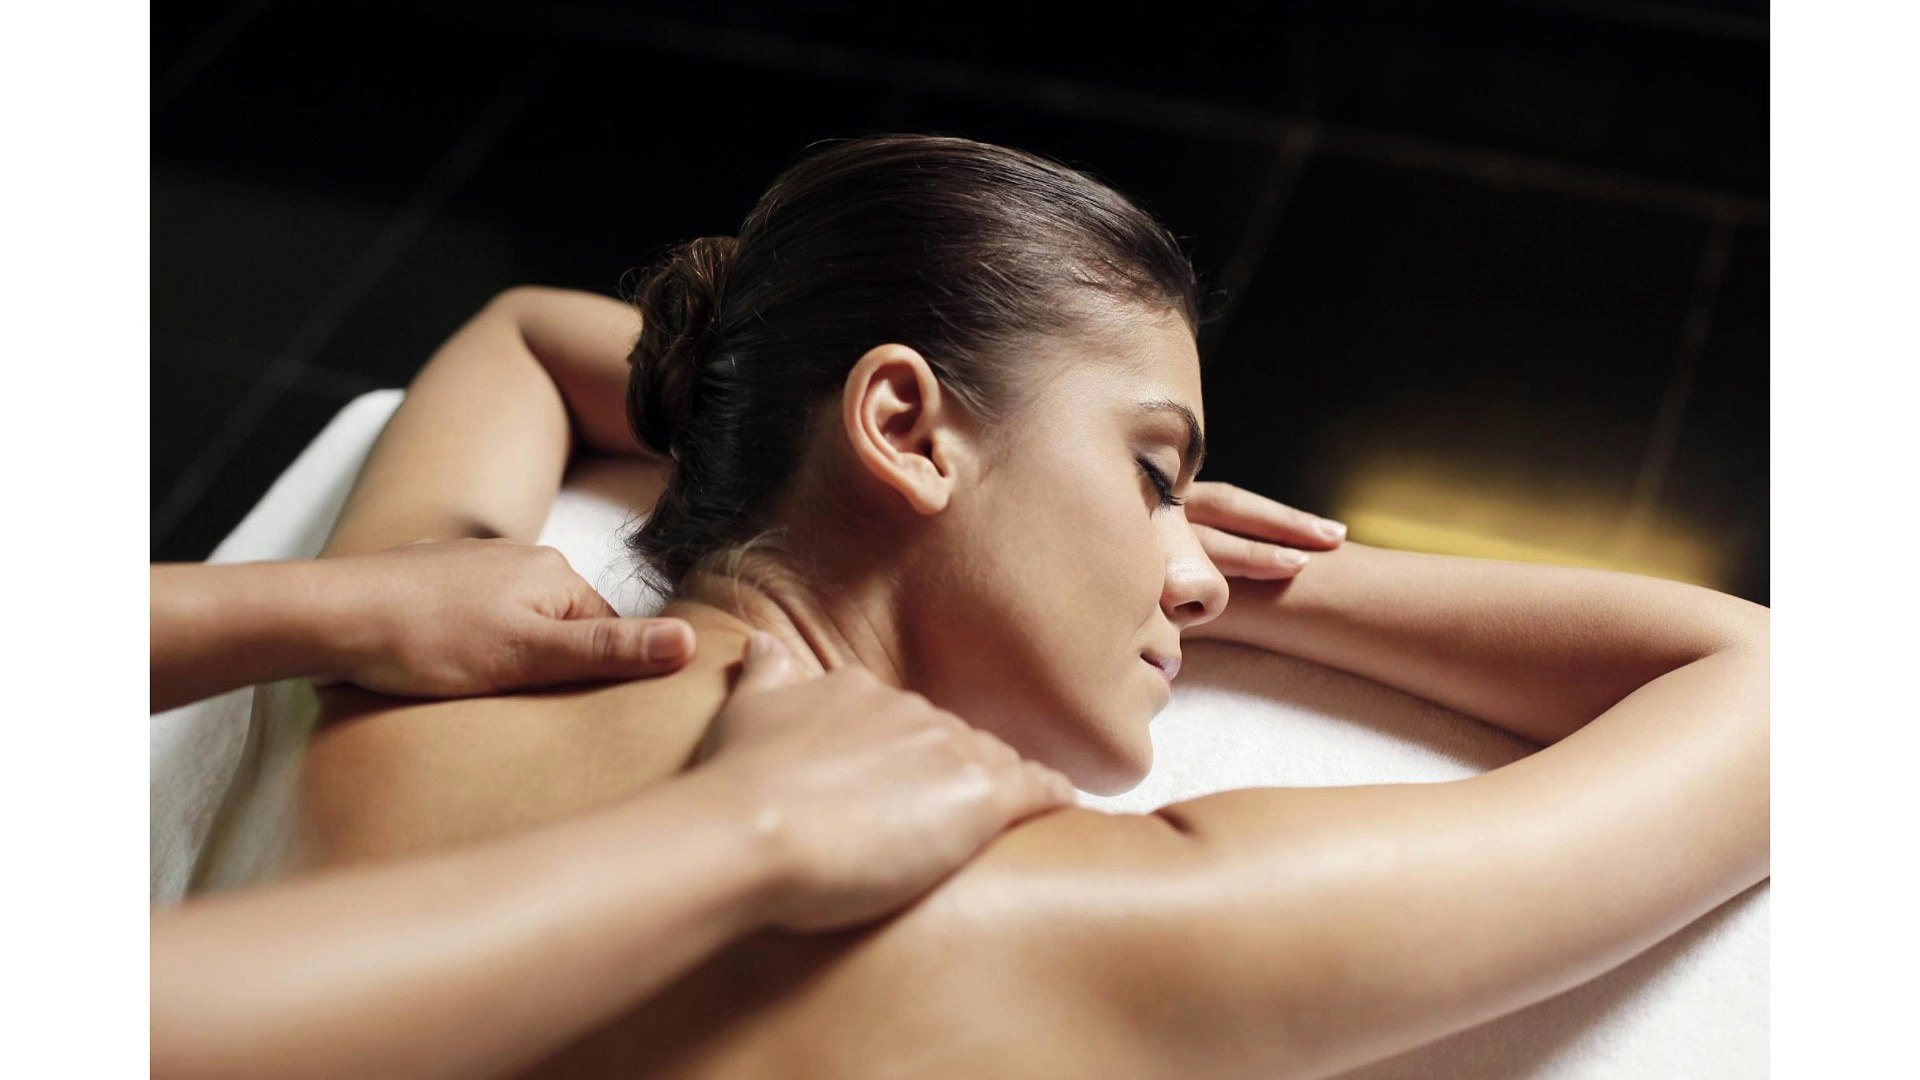 Goldsboro Day Spa - Tips for Choosing the Right Massage Therapist for You